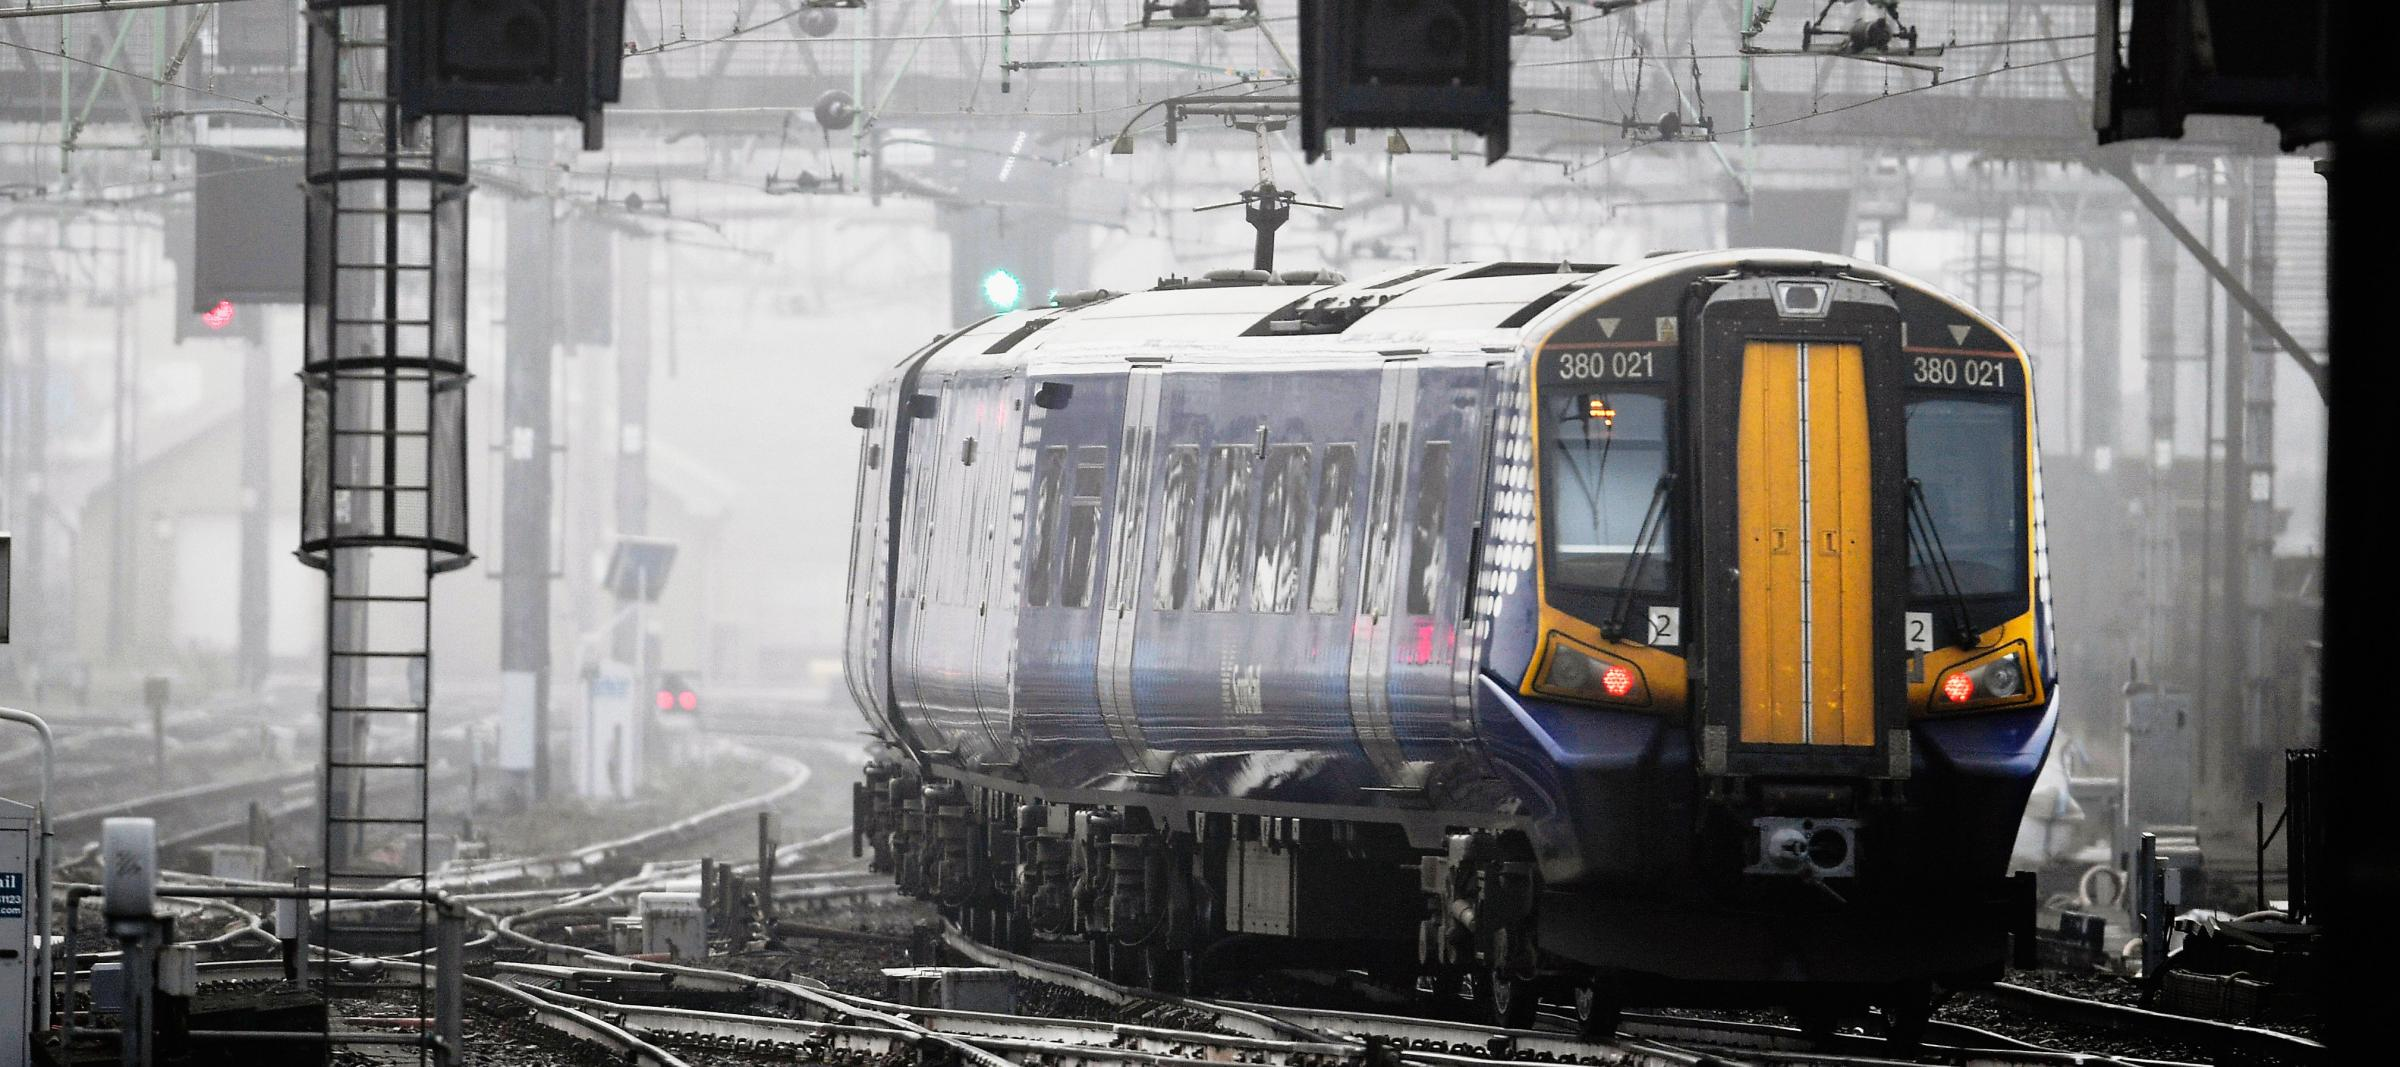 A ScotRail staff member said 'it happens more often than you'd think'